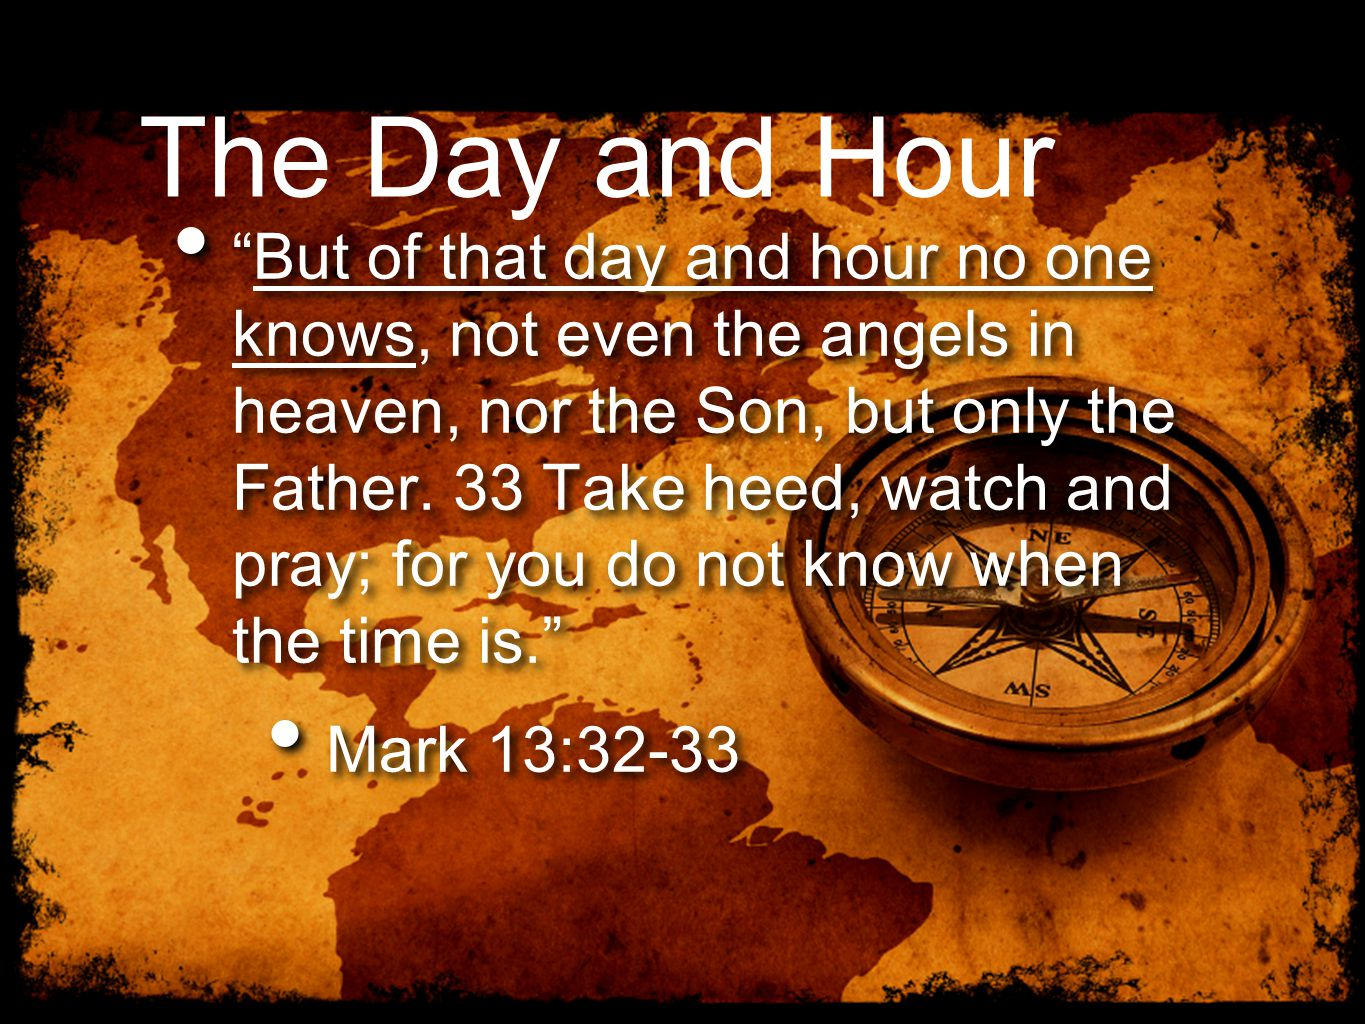 The Day and Hour But of that day and hour no one knows, not even the angels in heaven, nor the Son, but only the Father.